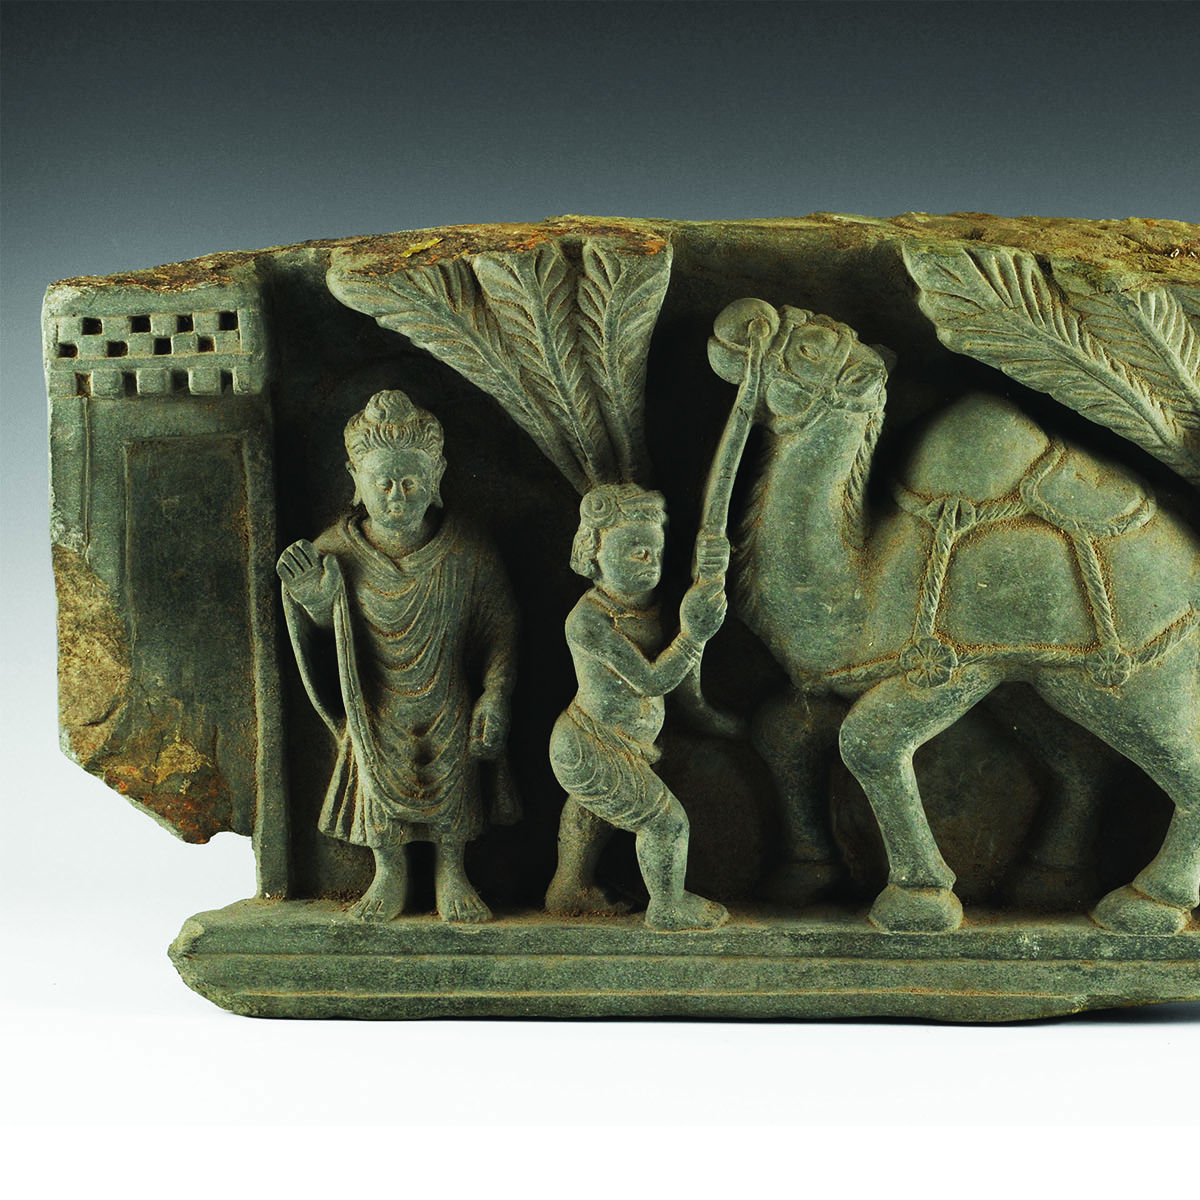 Photo of FRIEZE WIH CAMEL AND WARRIOR